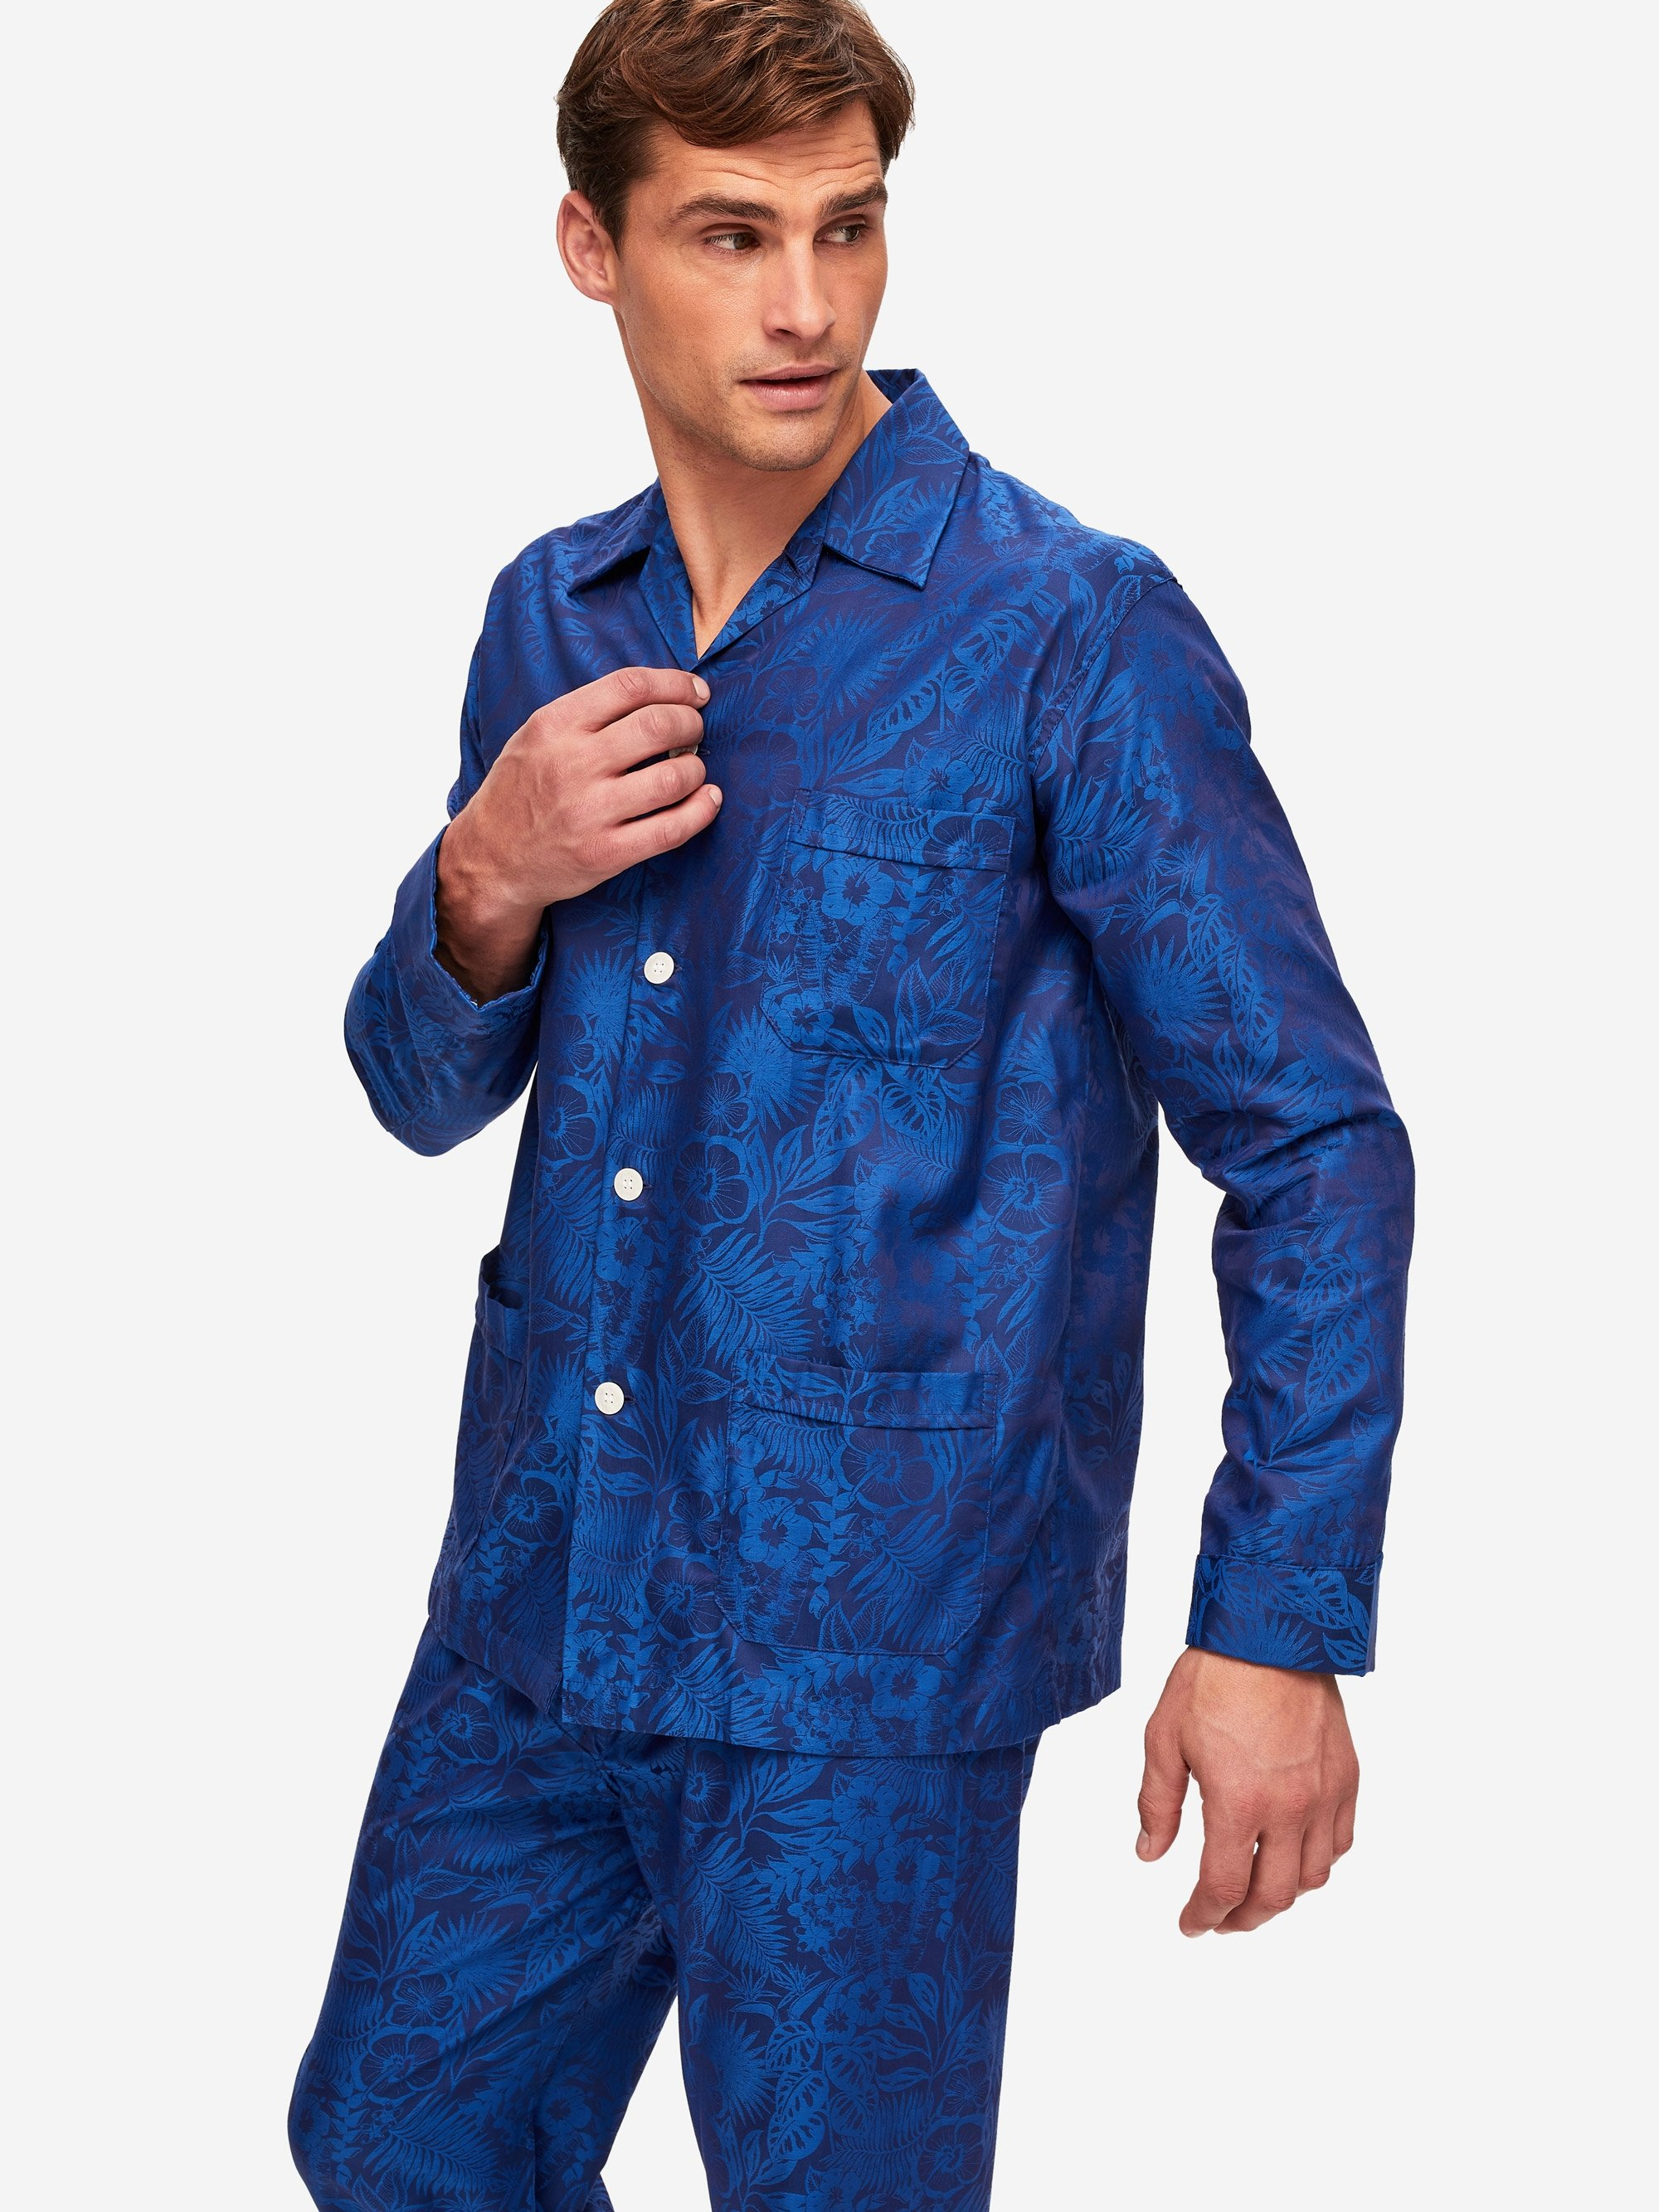 Men's Classic Fit Pyjamas Paris 19 Cotton Jacquard Navy